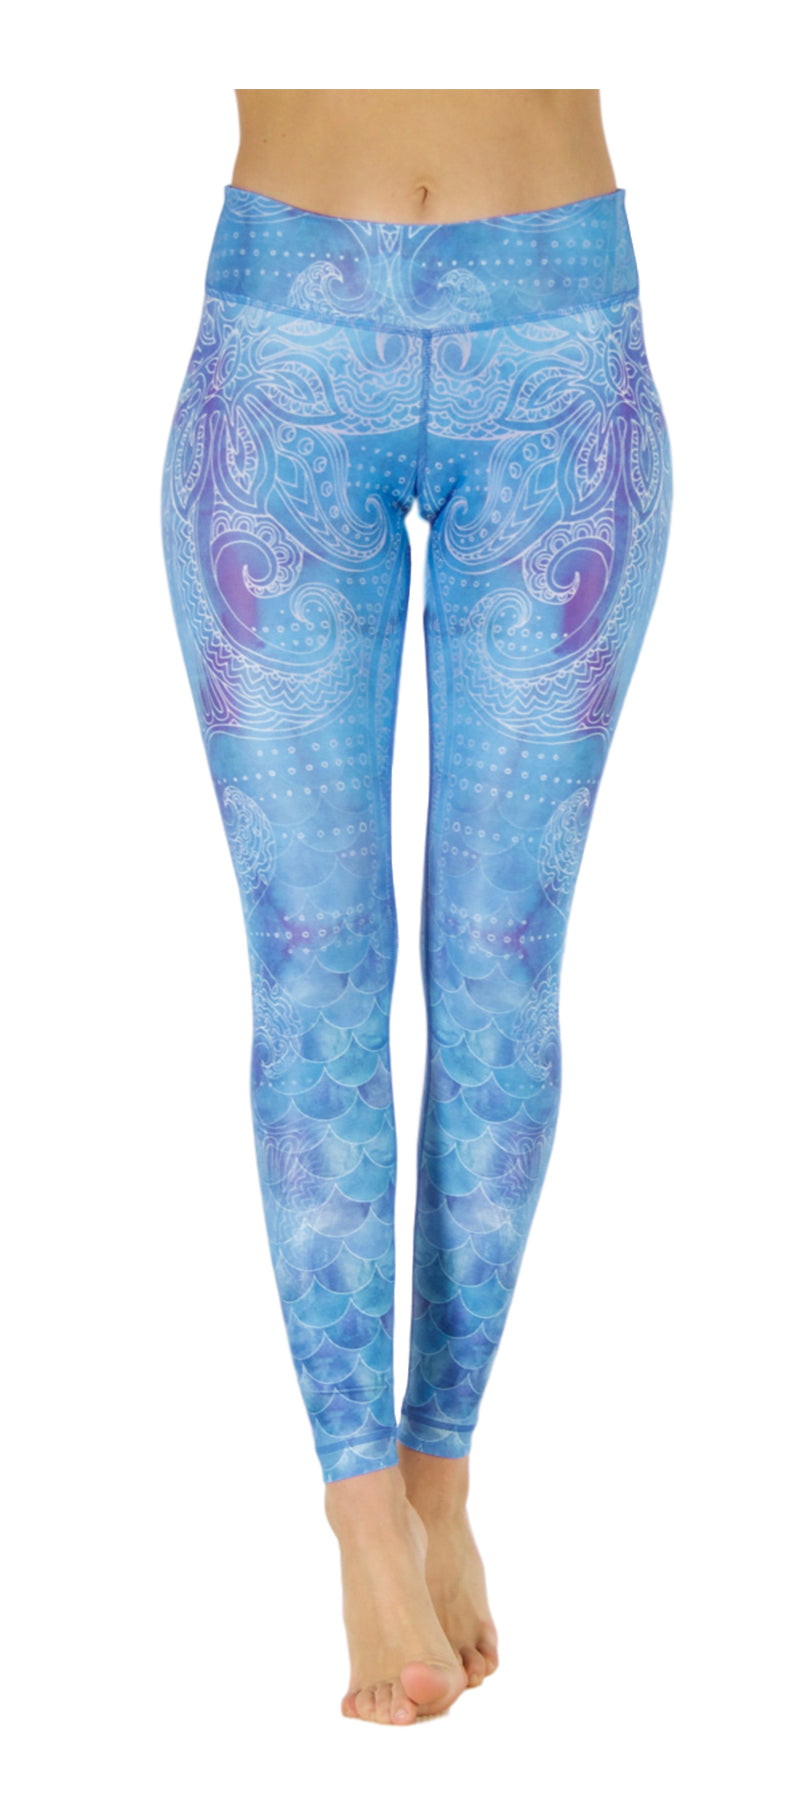 Mermaid by Niyama - High Quality, Yoga Legging for Movement Artists.